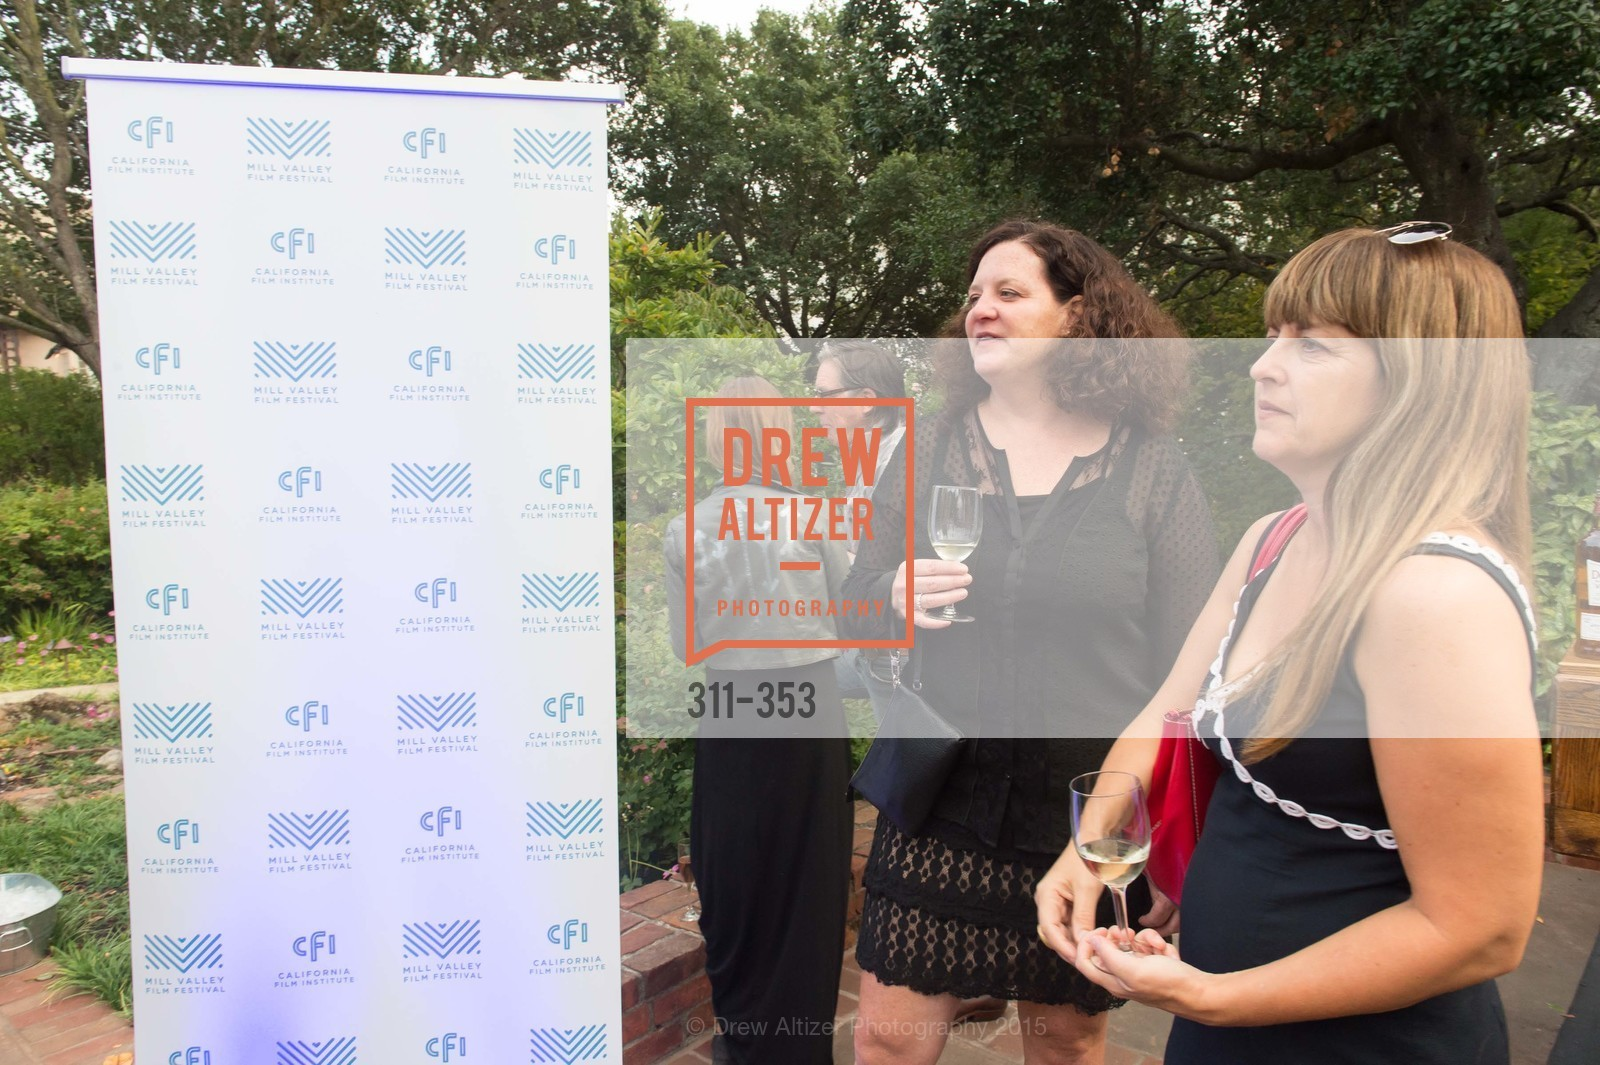 Extras, Mill Valley Film Festival Opening Night VIP Reception, October 8th, 2015, Photo,Drew Altizer, Drew Altizer Photography, full-service agency, private events, San Francisco photographer, photographer california